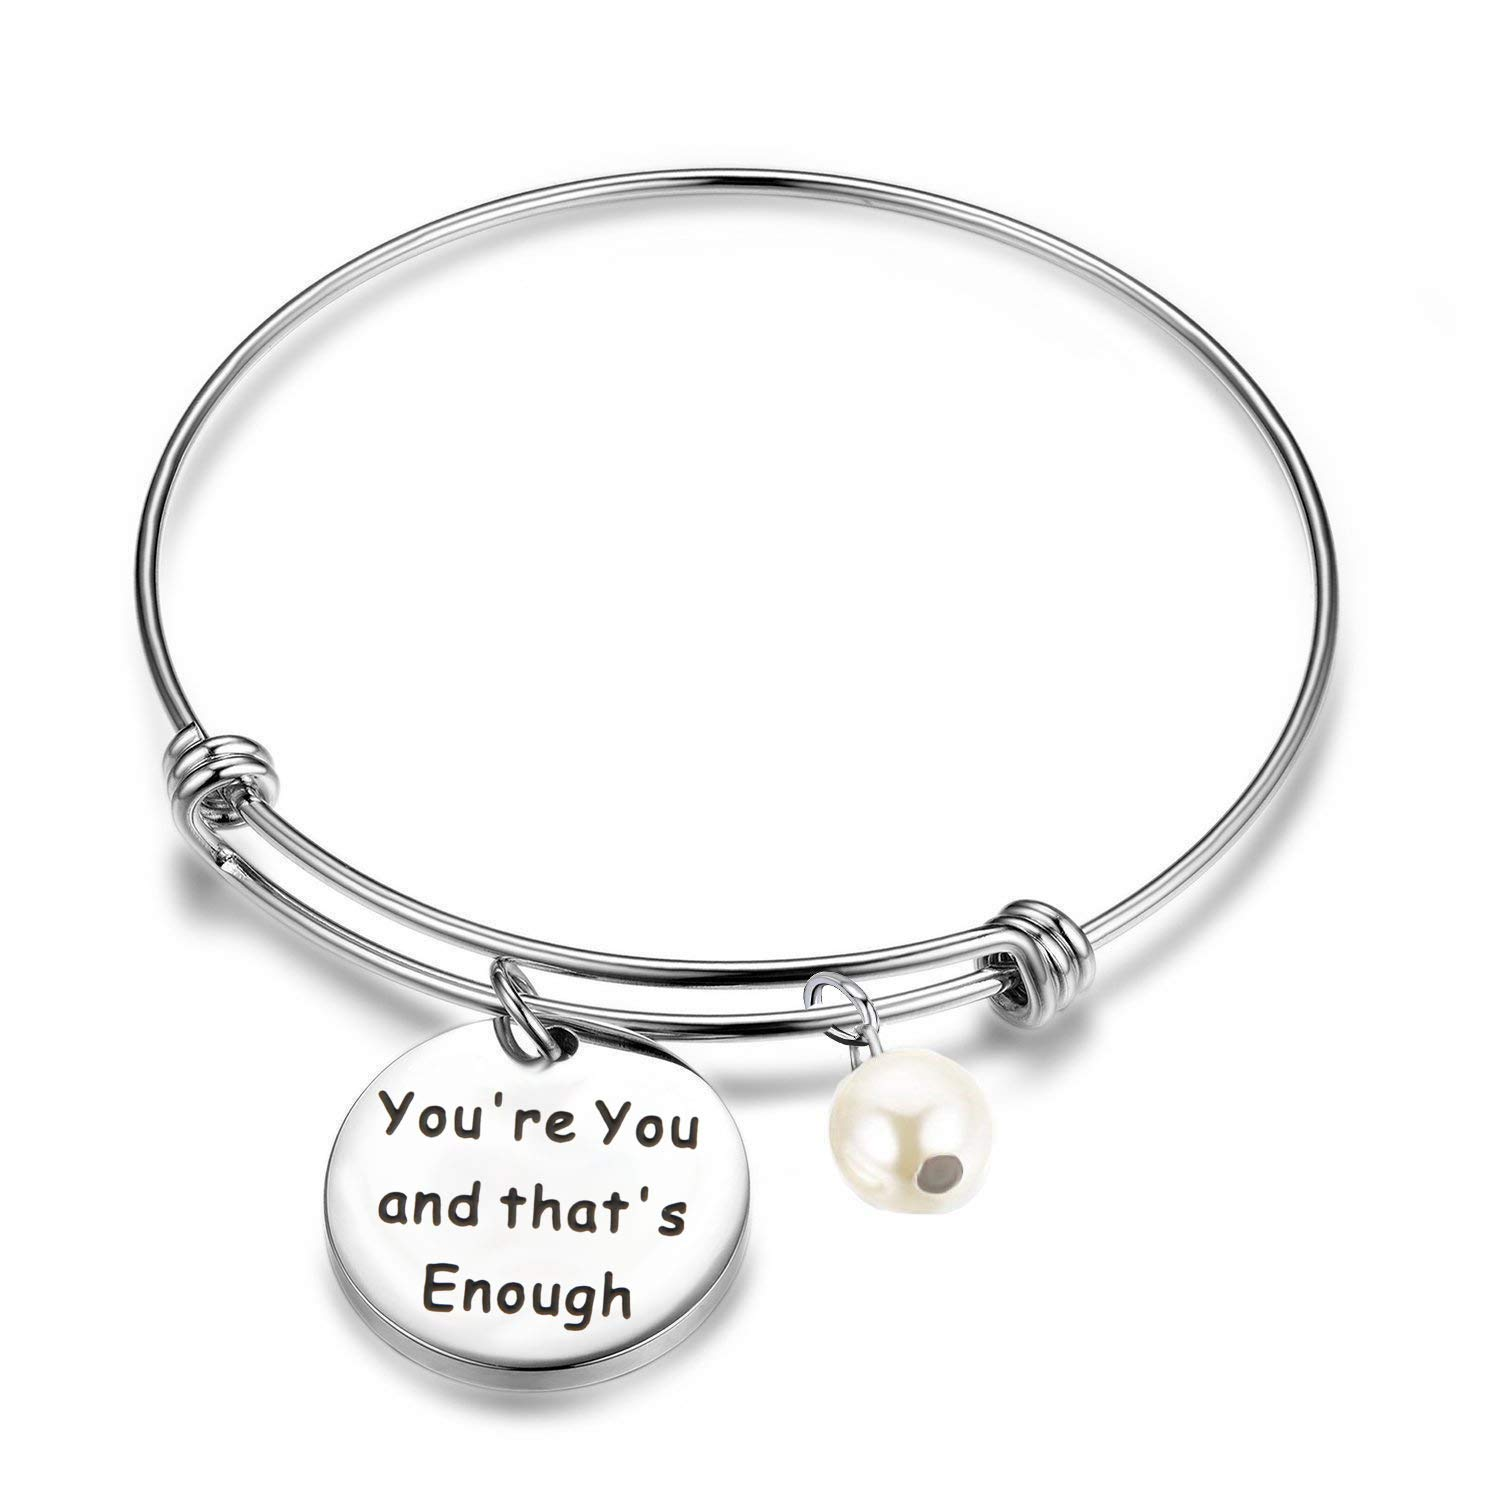 You're You and That's Enough Dear Evan Hansen Inspired Adjustable Bracelet Theater Gift Actor Gift AKTAP